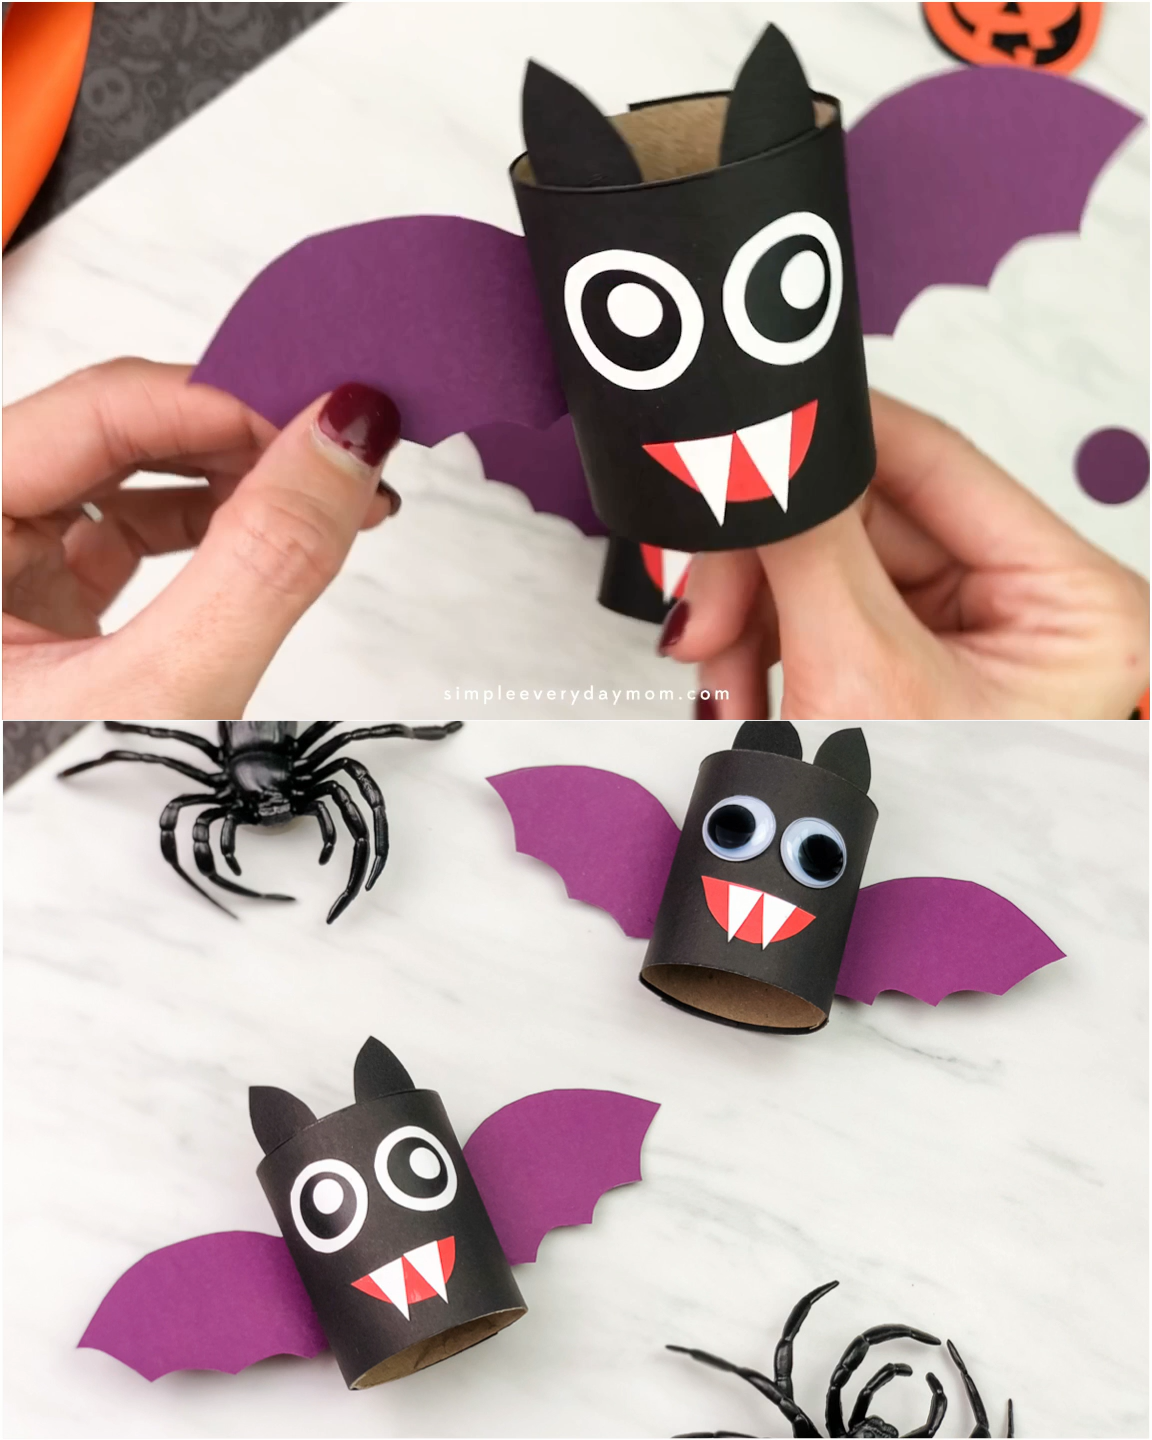 Toilet Paper Roll Bat Craft For Kids  #easycrafts